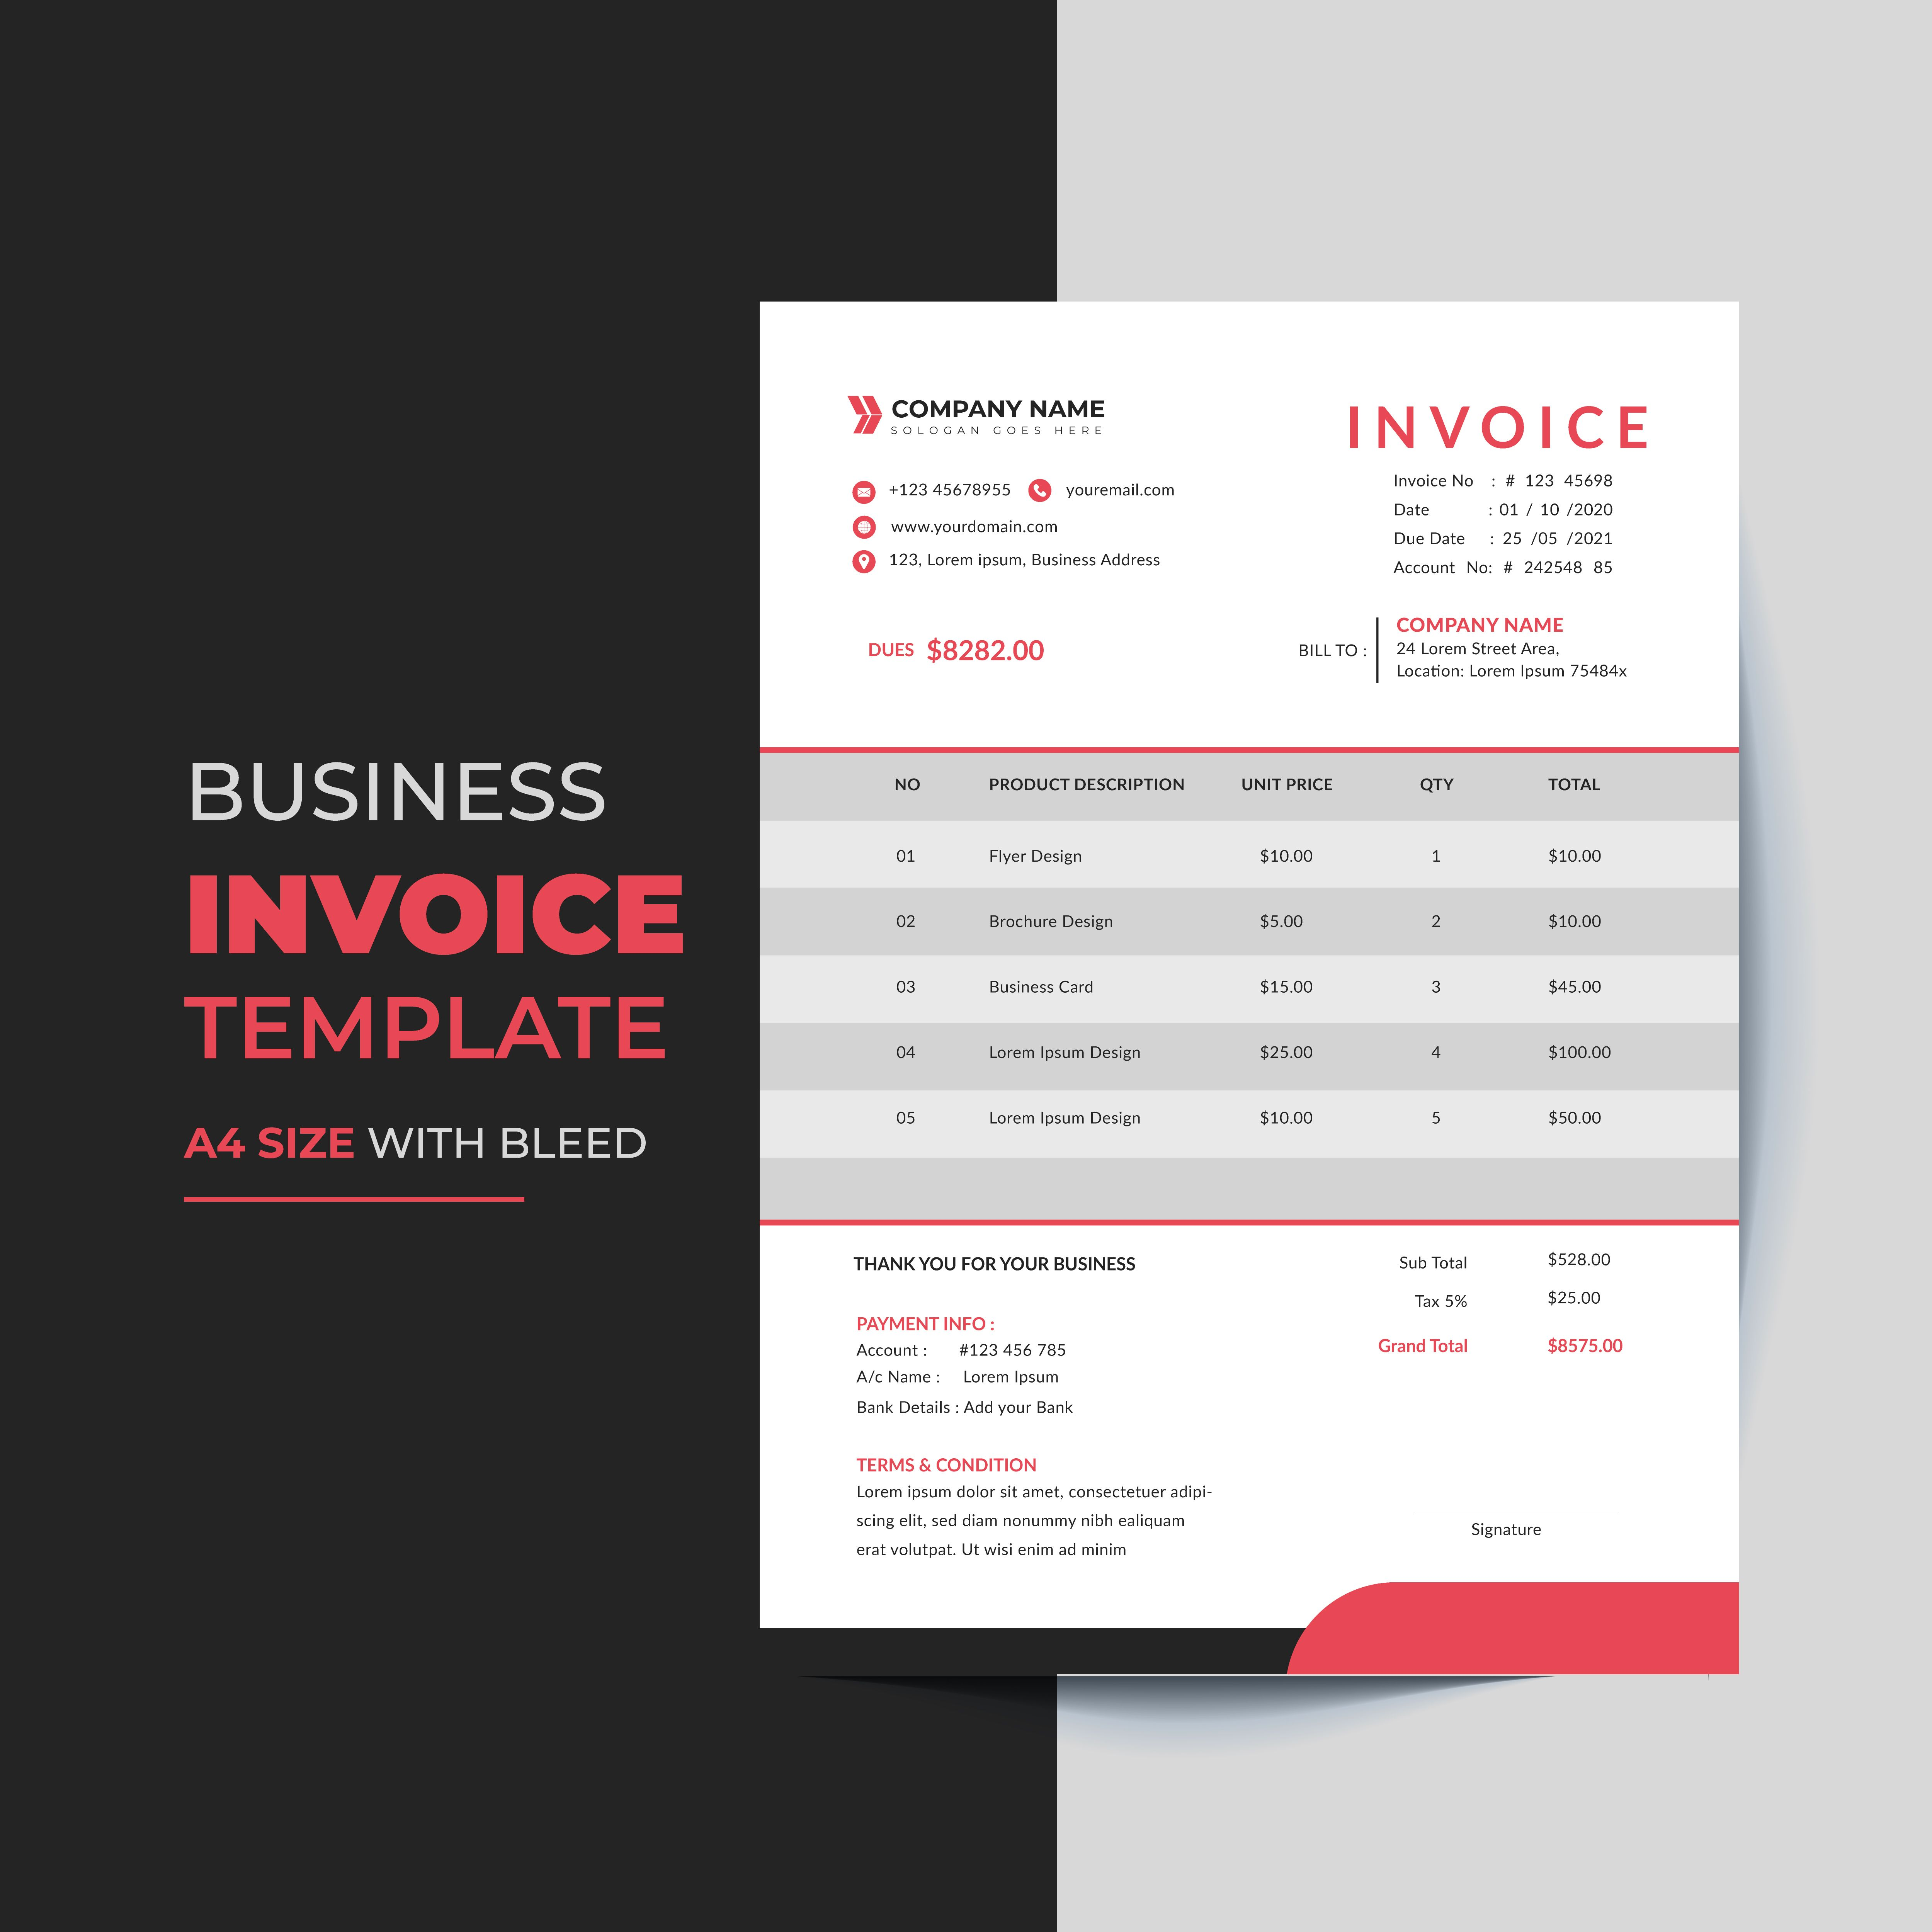 The Modern And Minimal Invoice Template Format Invoice Template Banner Ads Design Adwords Banner